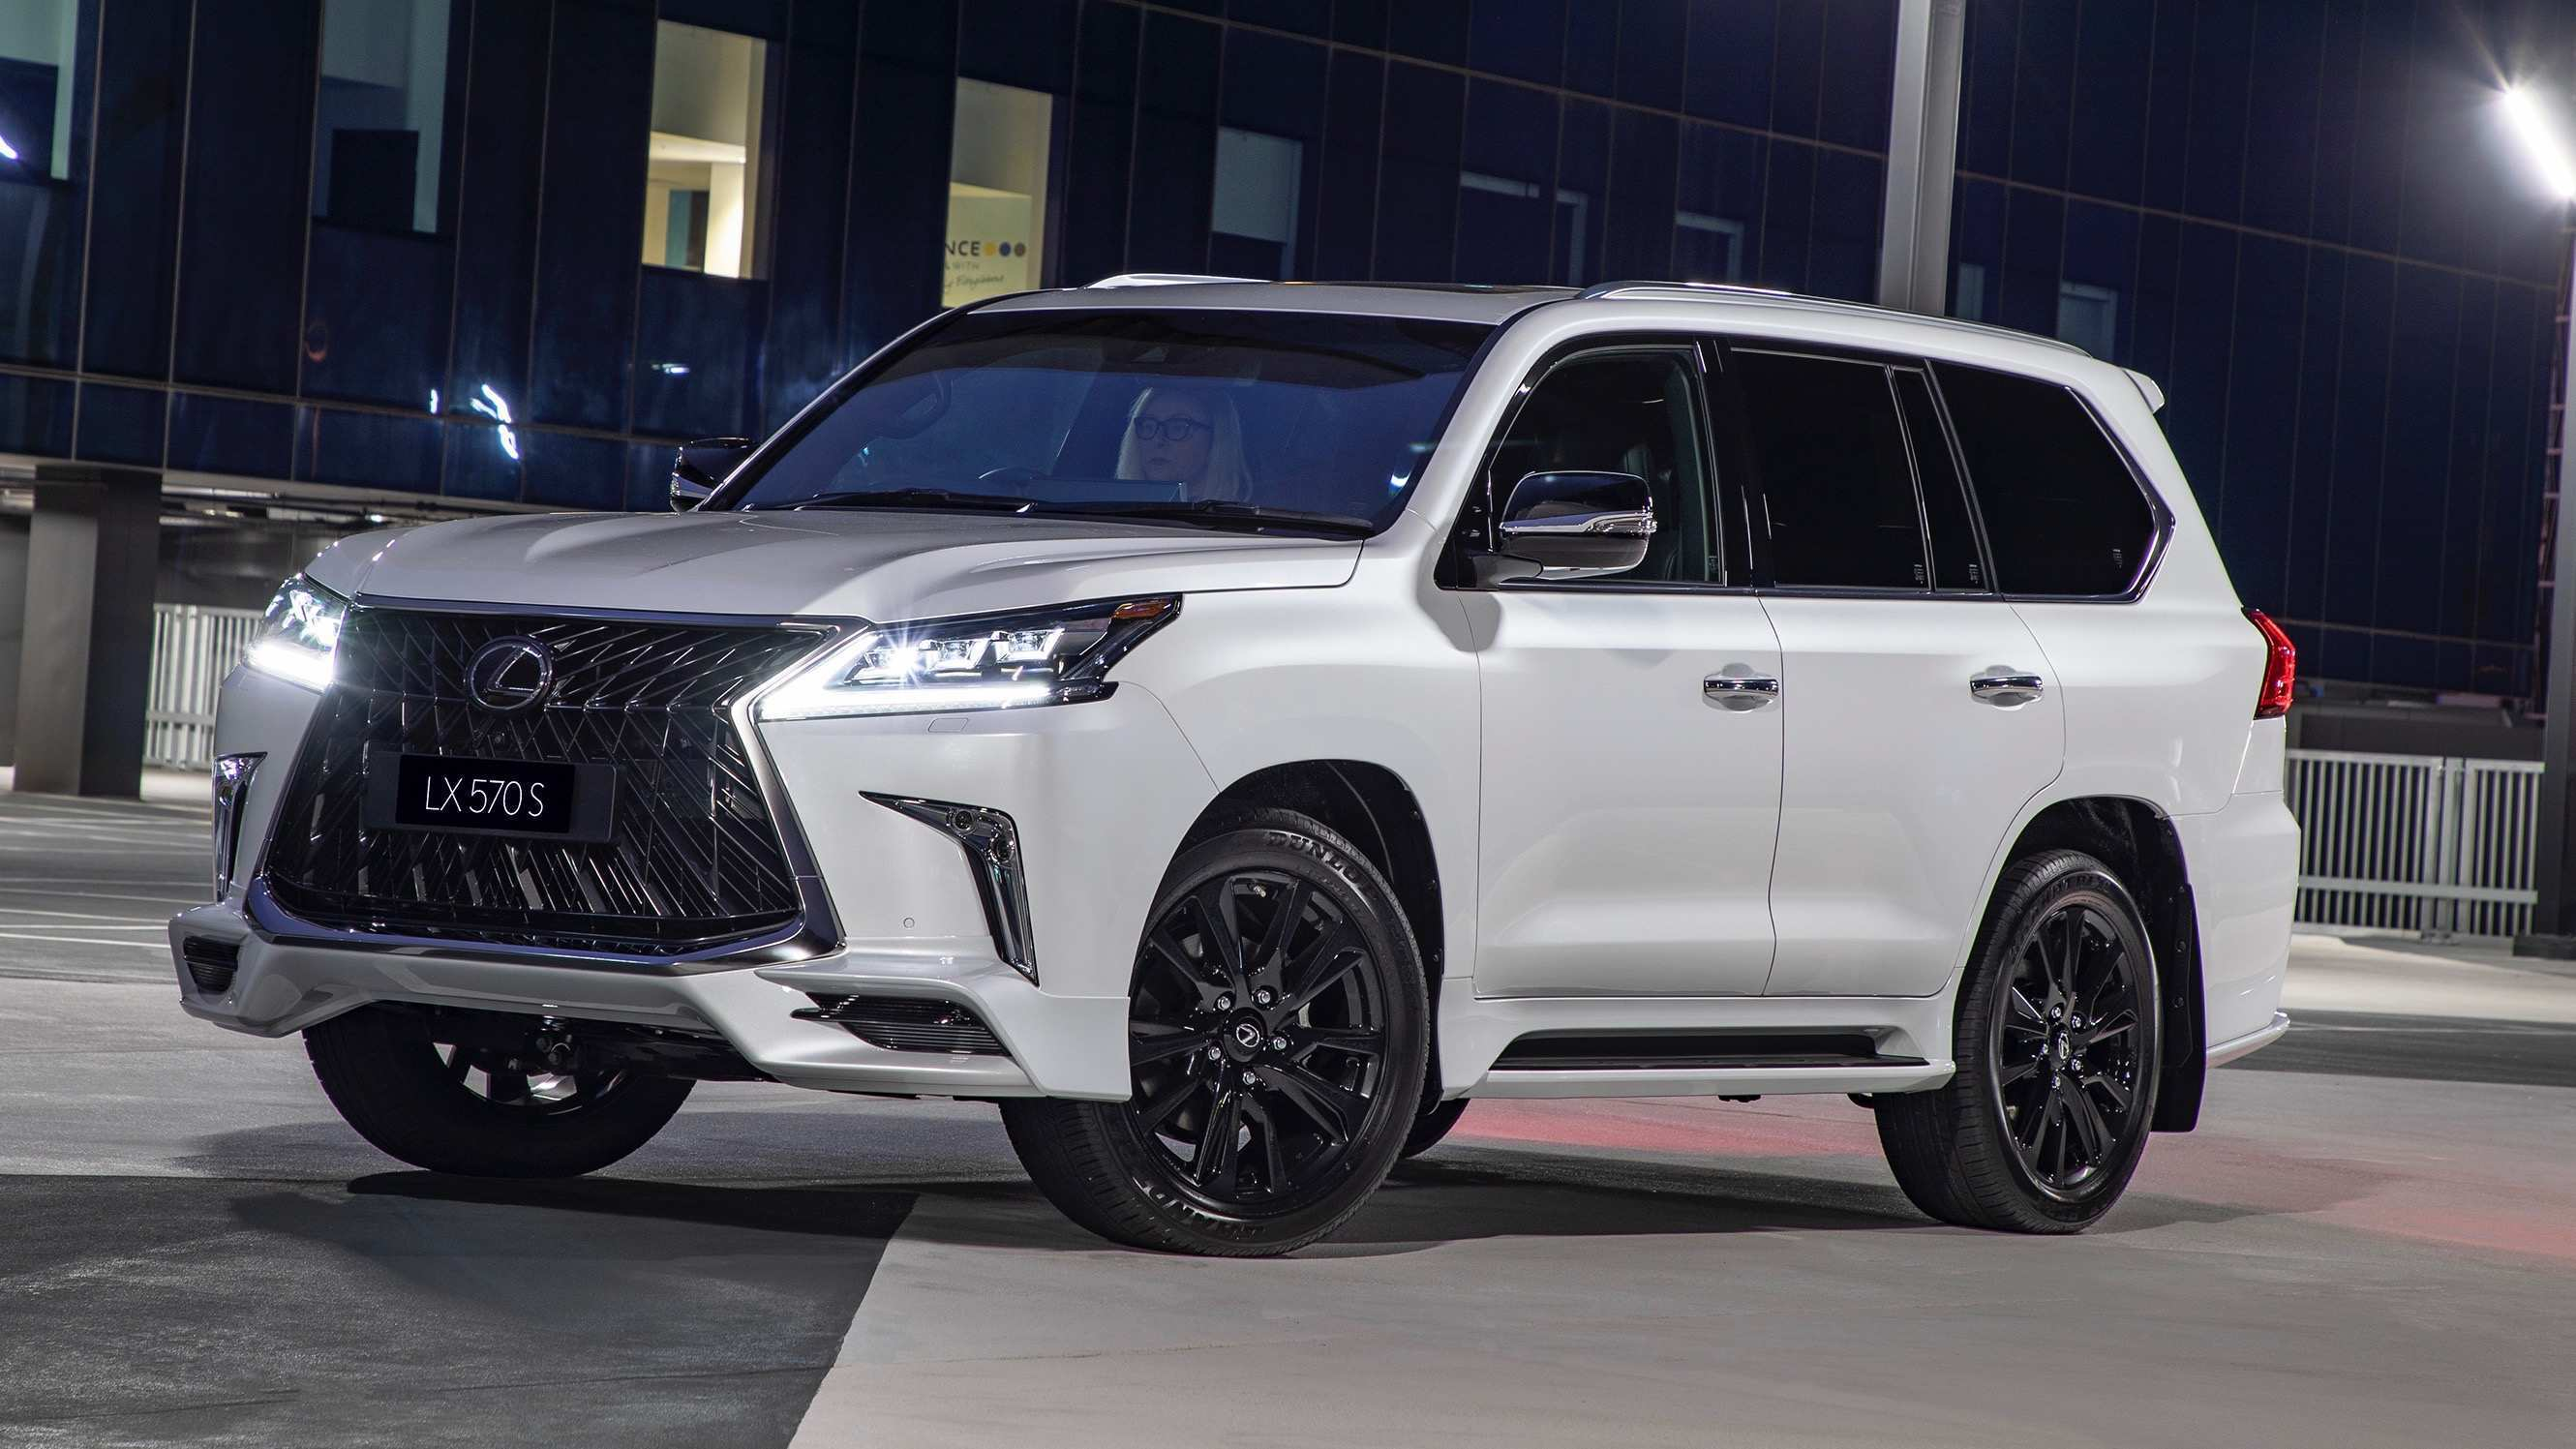 72 The Best 2019 Lexus Lx Concept And Review